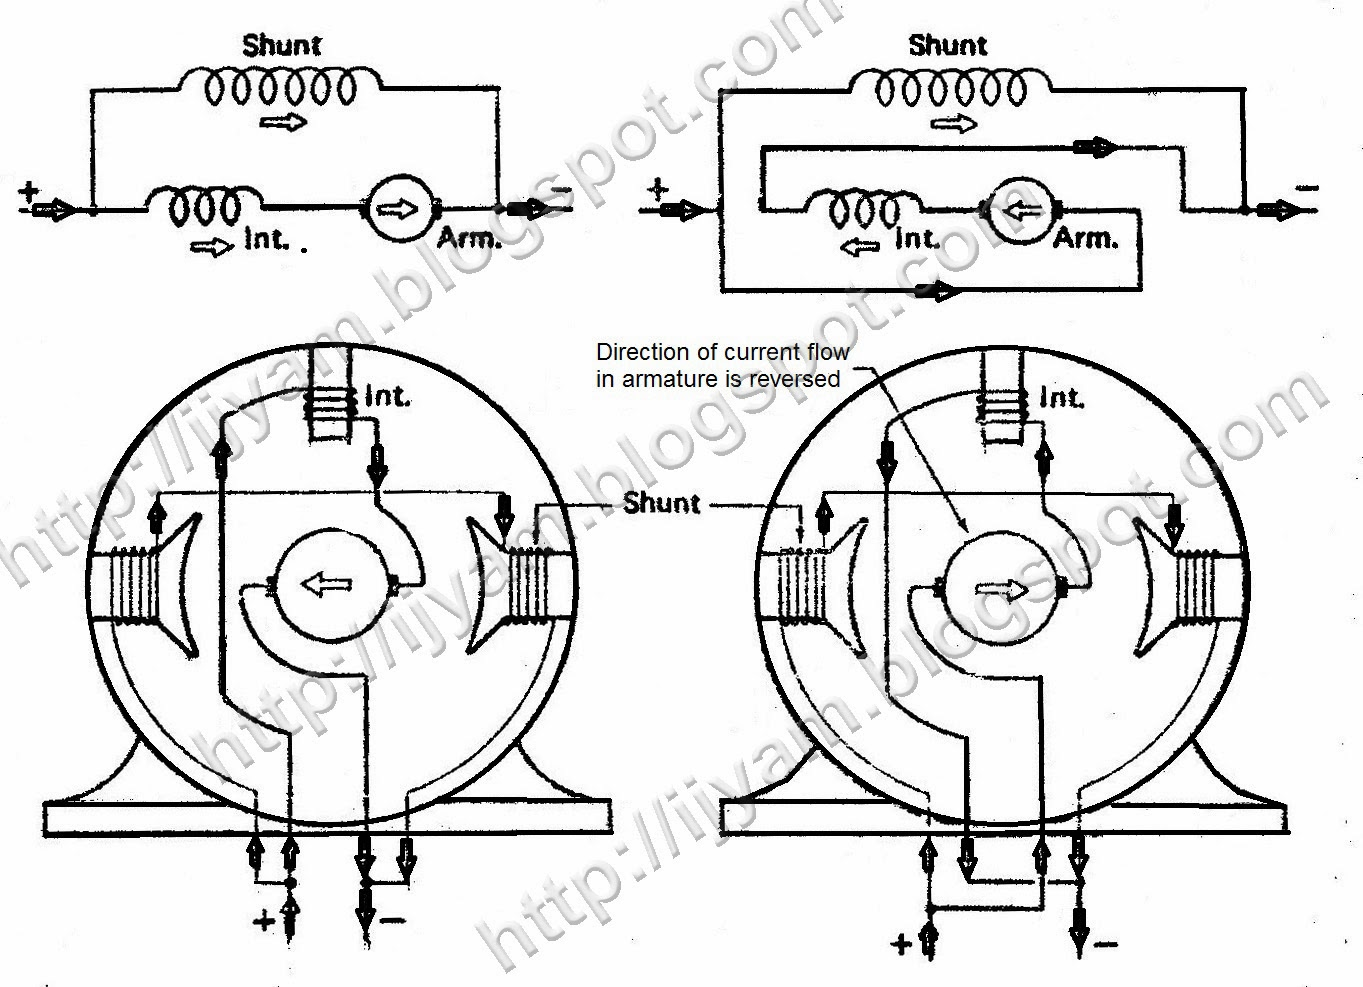 shunt motor wiring diagram msi n1996 motherboard power compound compress